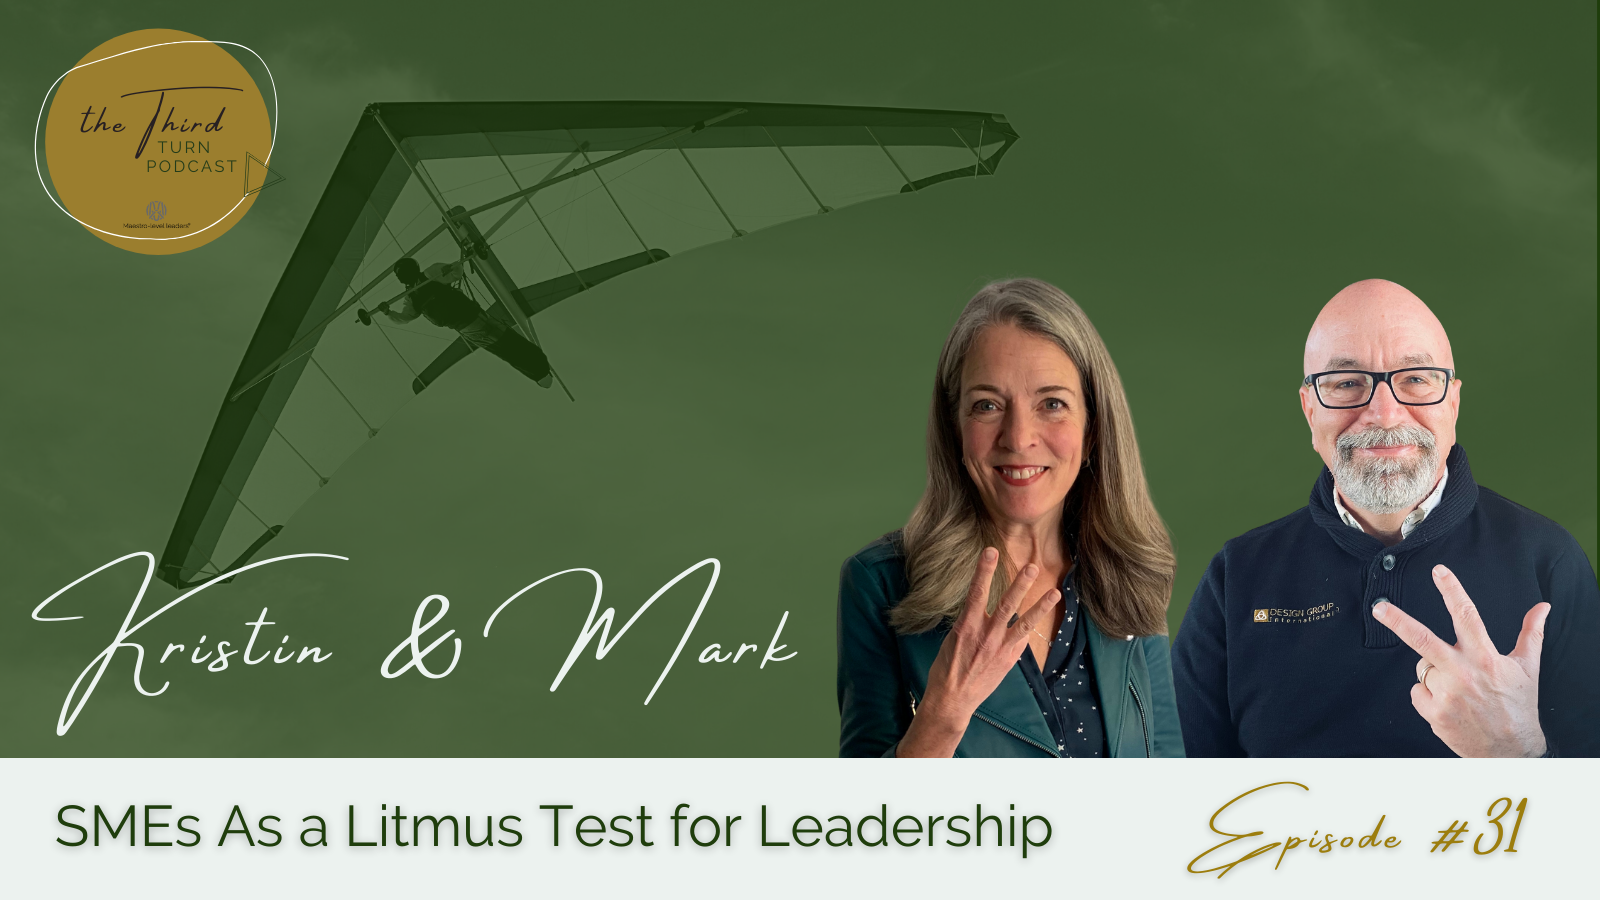 SMEs As a Litmus Test for Leadership